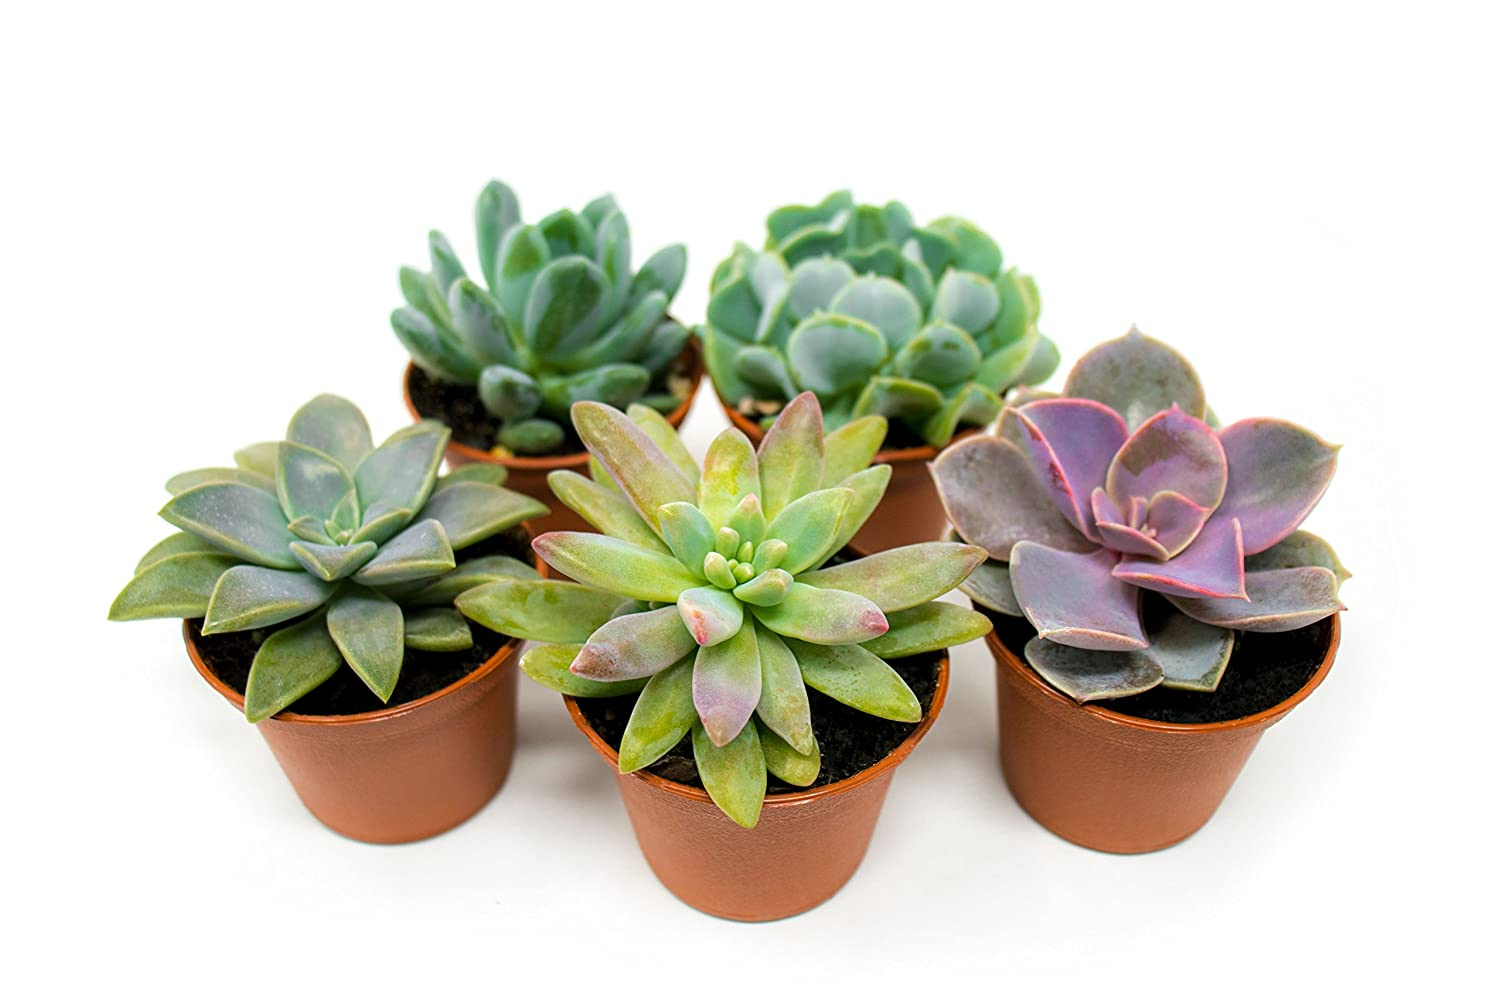 Amazon Succulent Plants 5 Pack Fully Rooted In Planter Pots